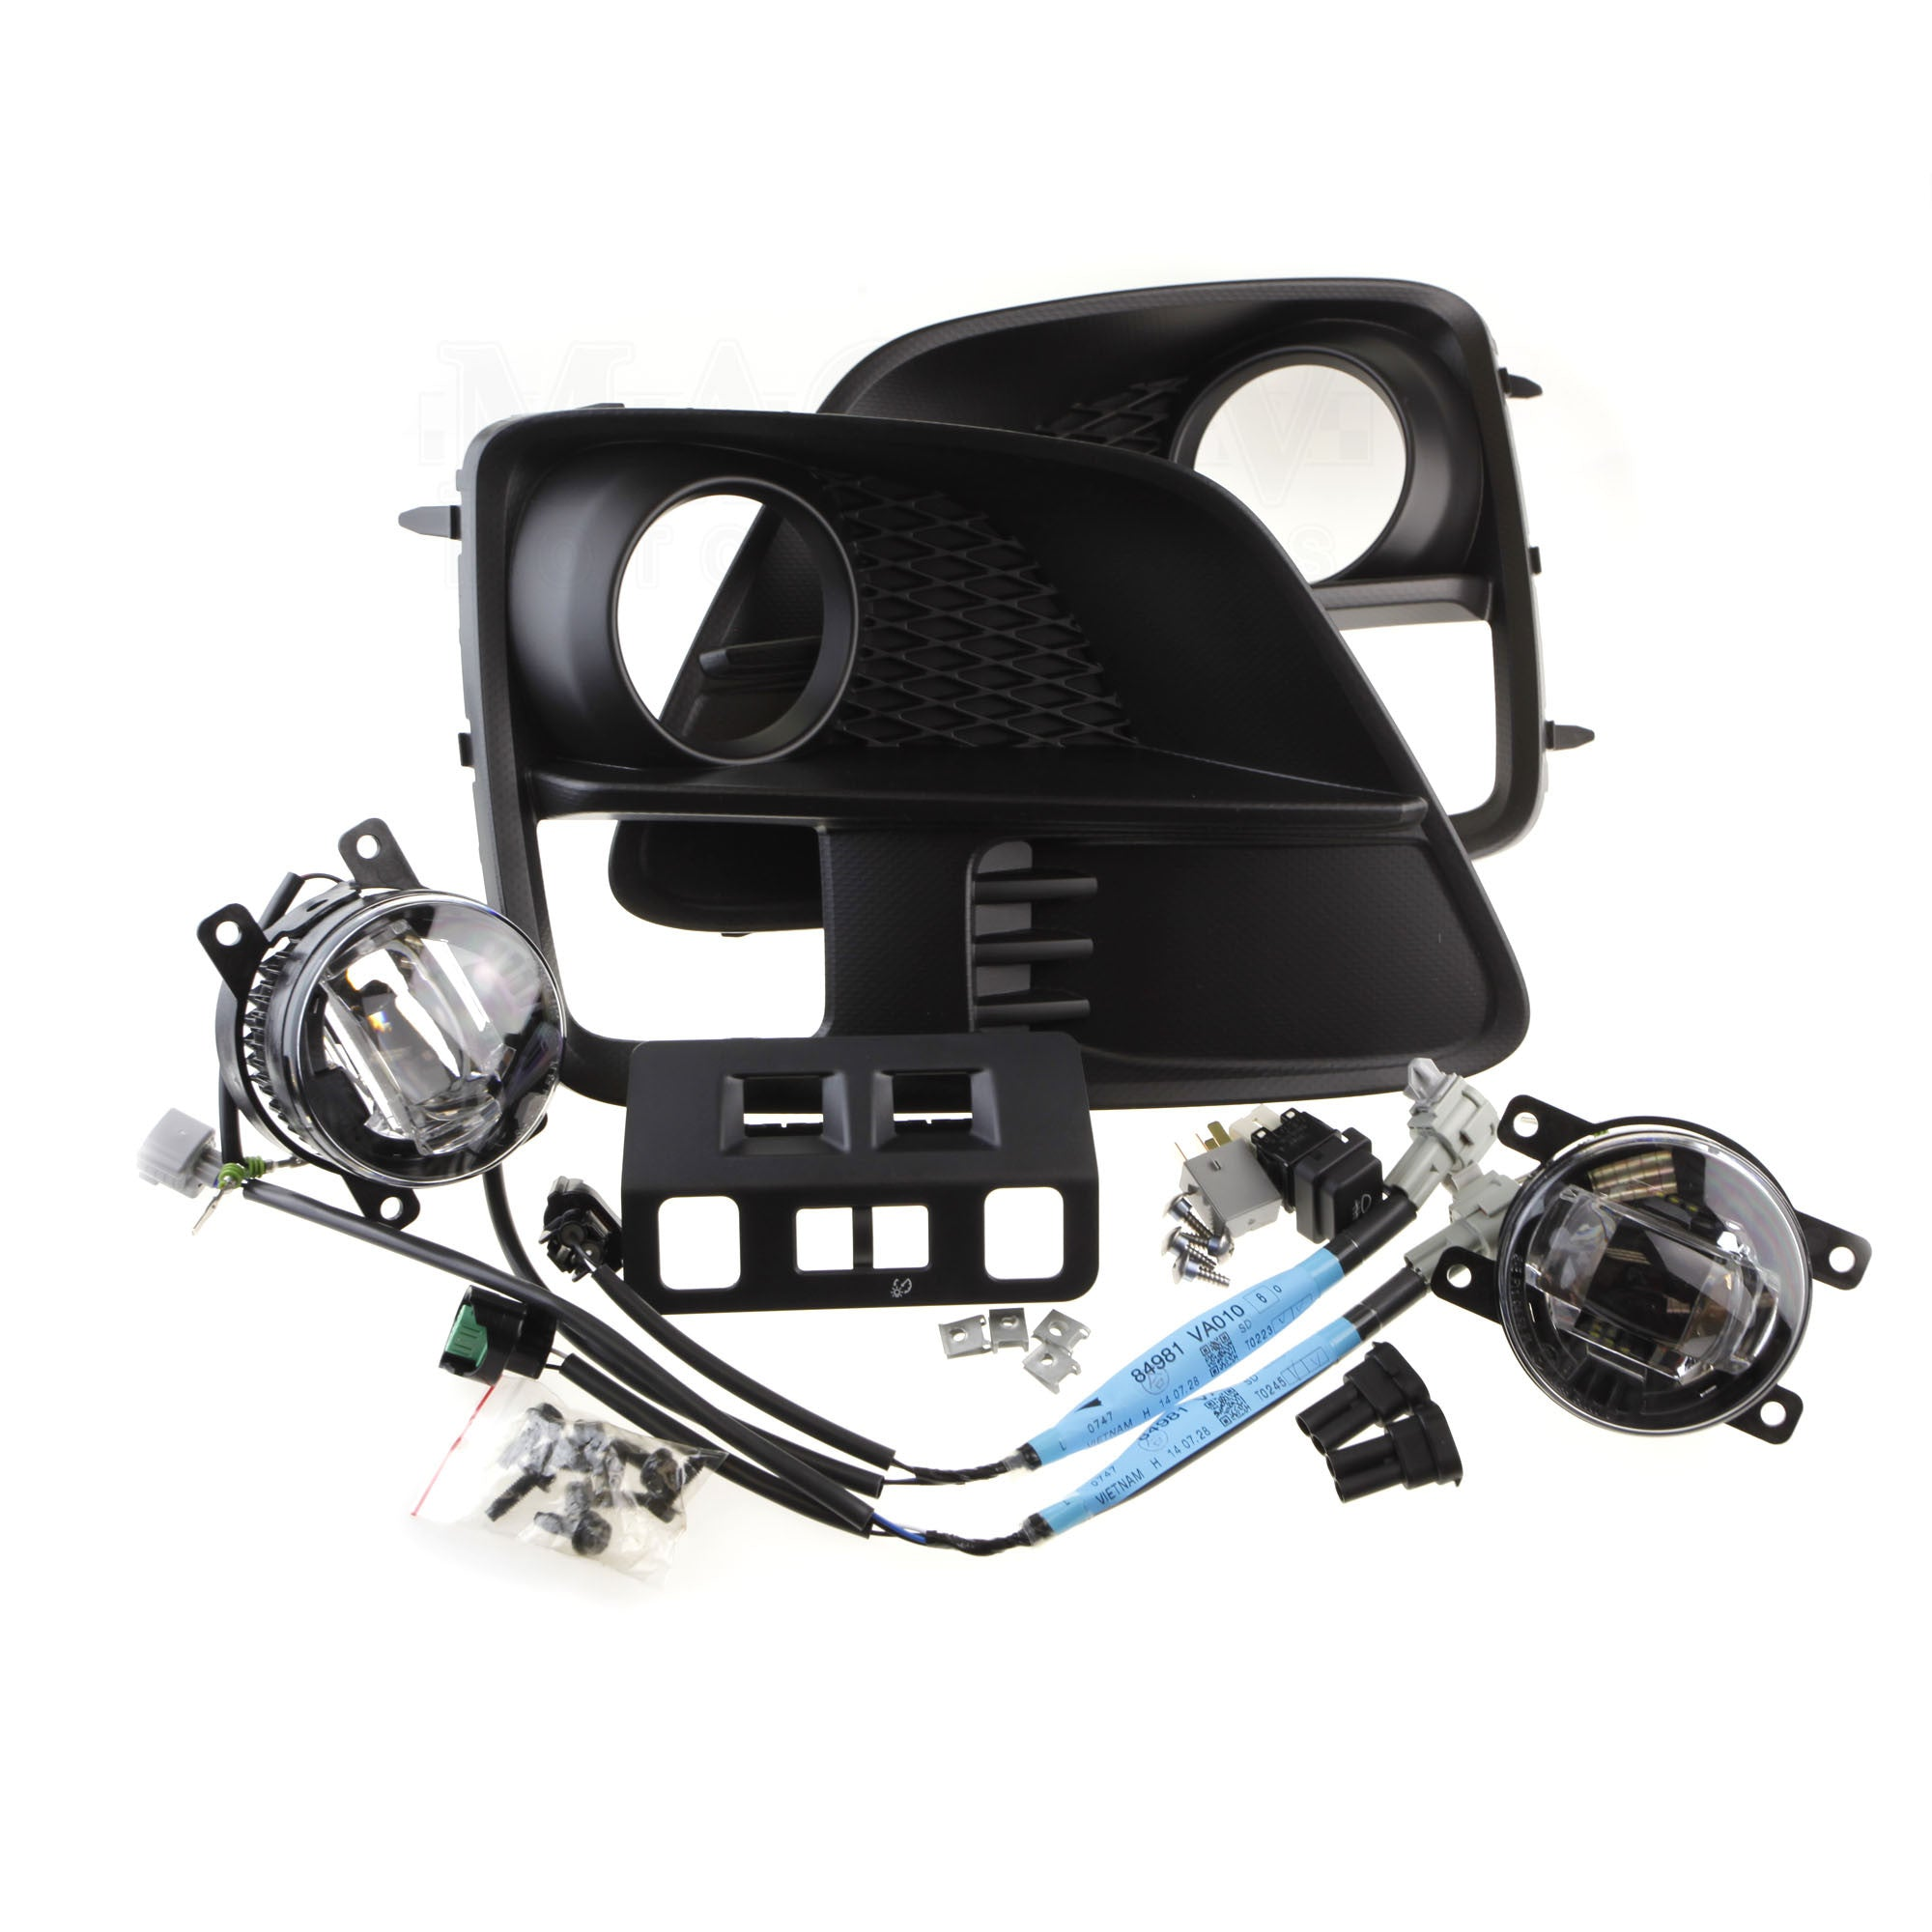 [DIAGRAM_34OR]  Subaru Fog Lamp Install Kit with Morimoto XB LED Lights 2015-2017 WRX/ |  FastWRX.com | 2007 Wrx Fog Light Wiring Harness |  | FastWRX.com